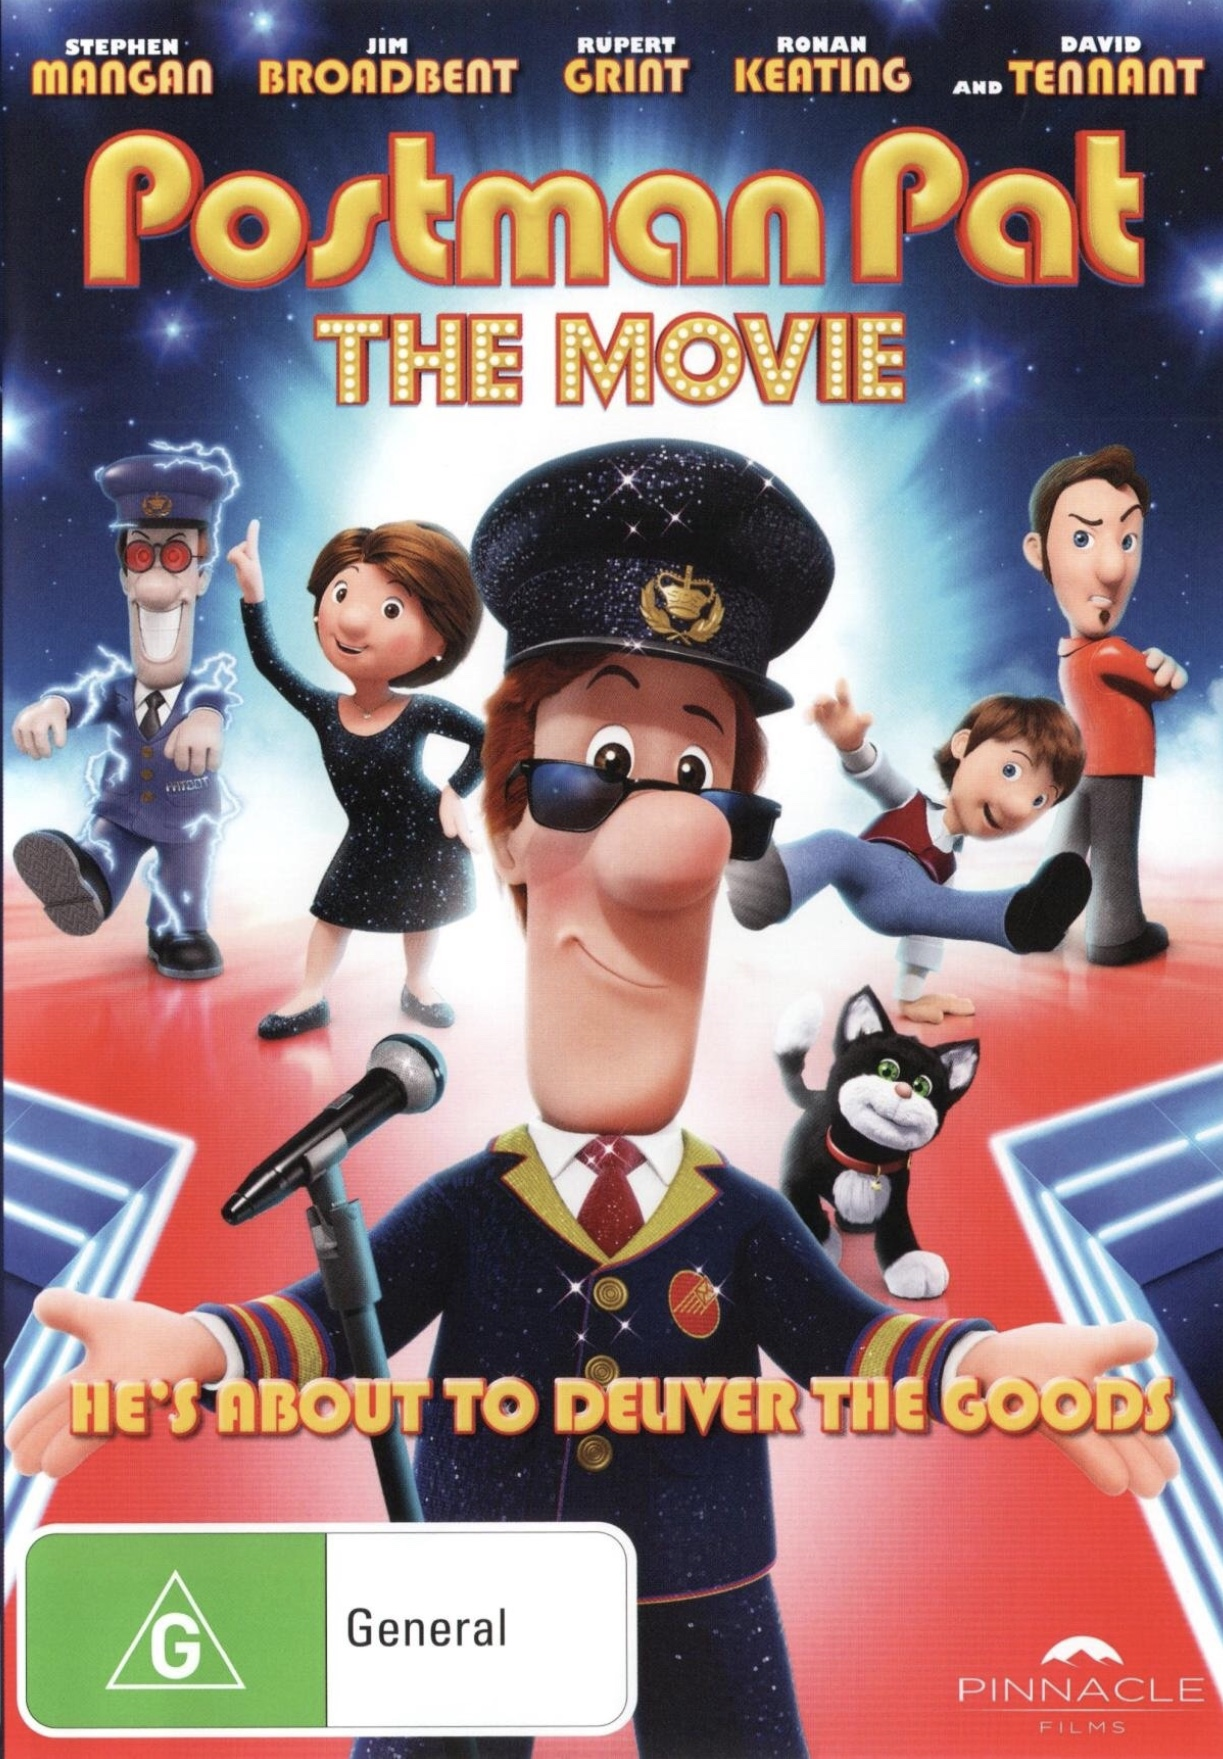 Postman Pat the Movie/Gallery